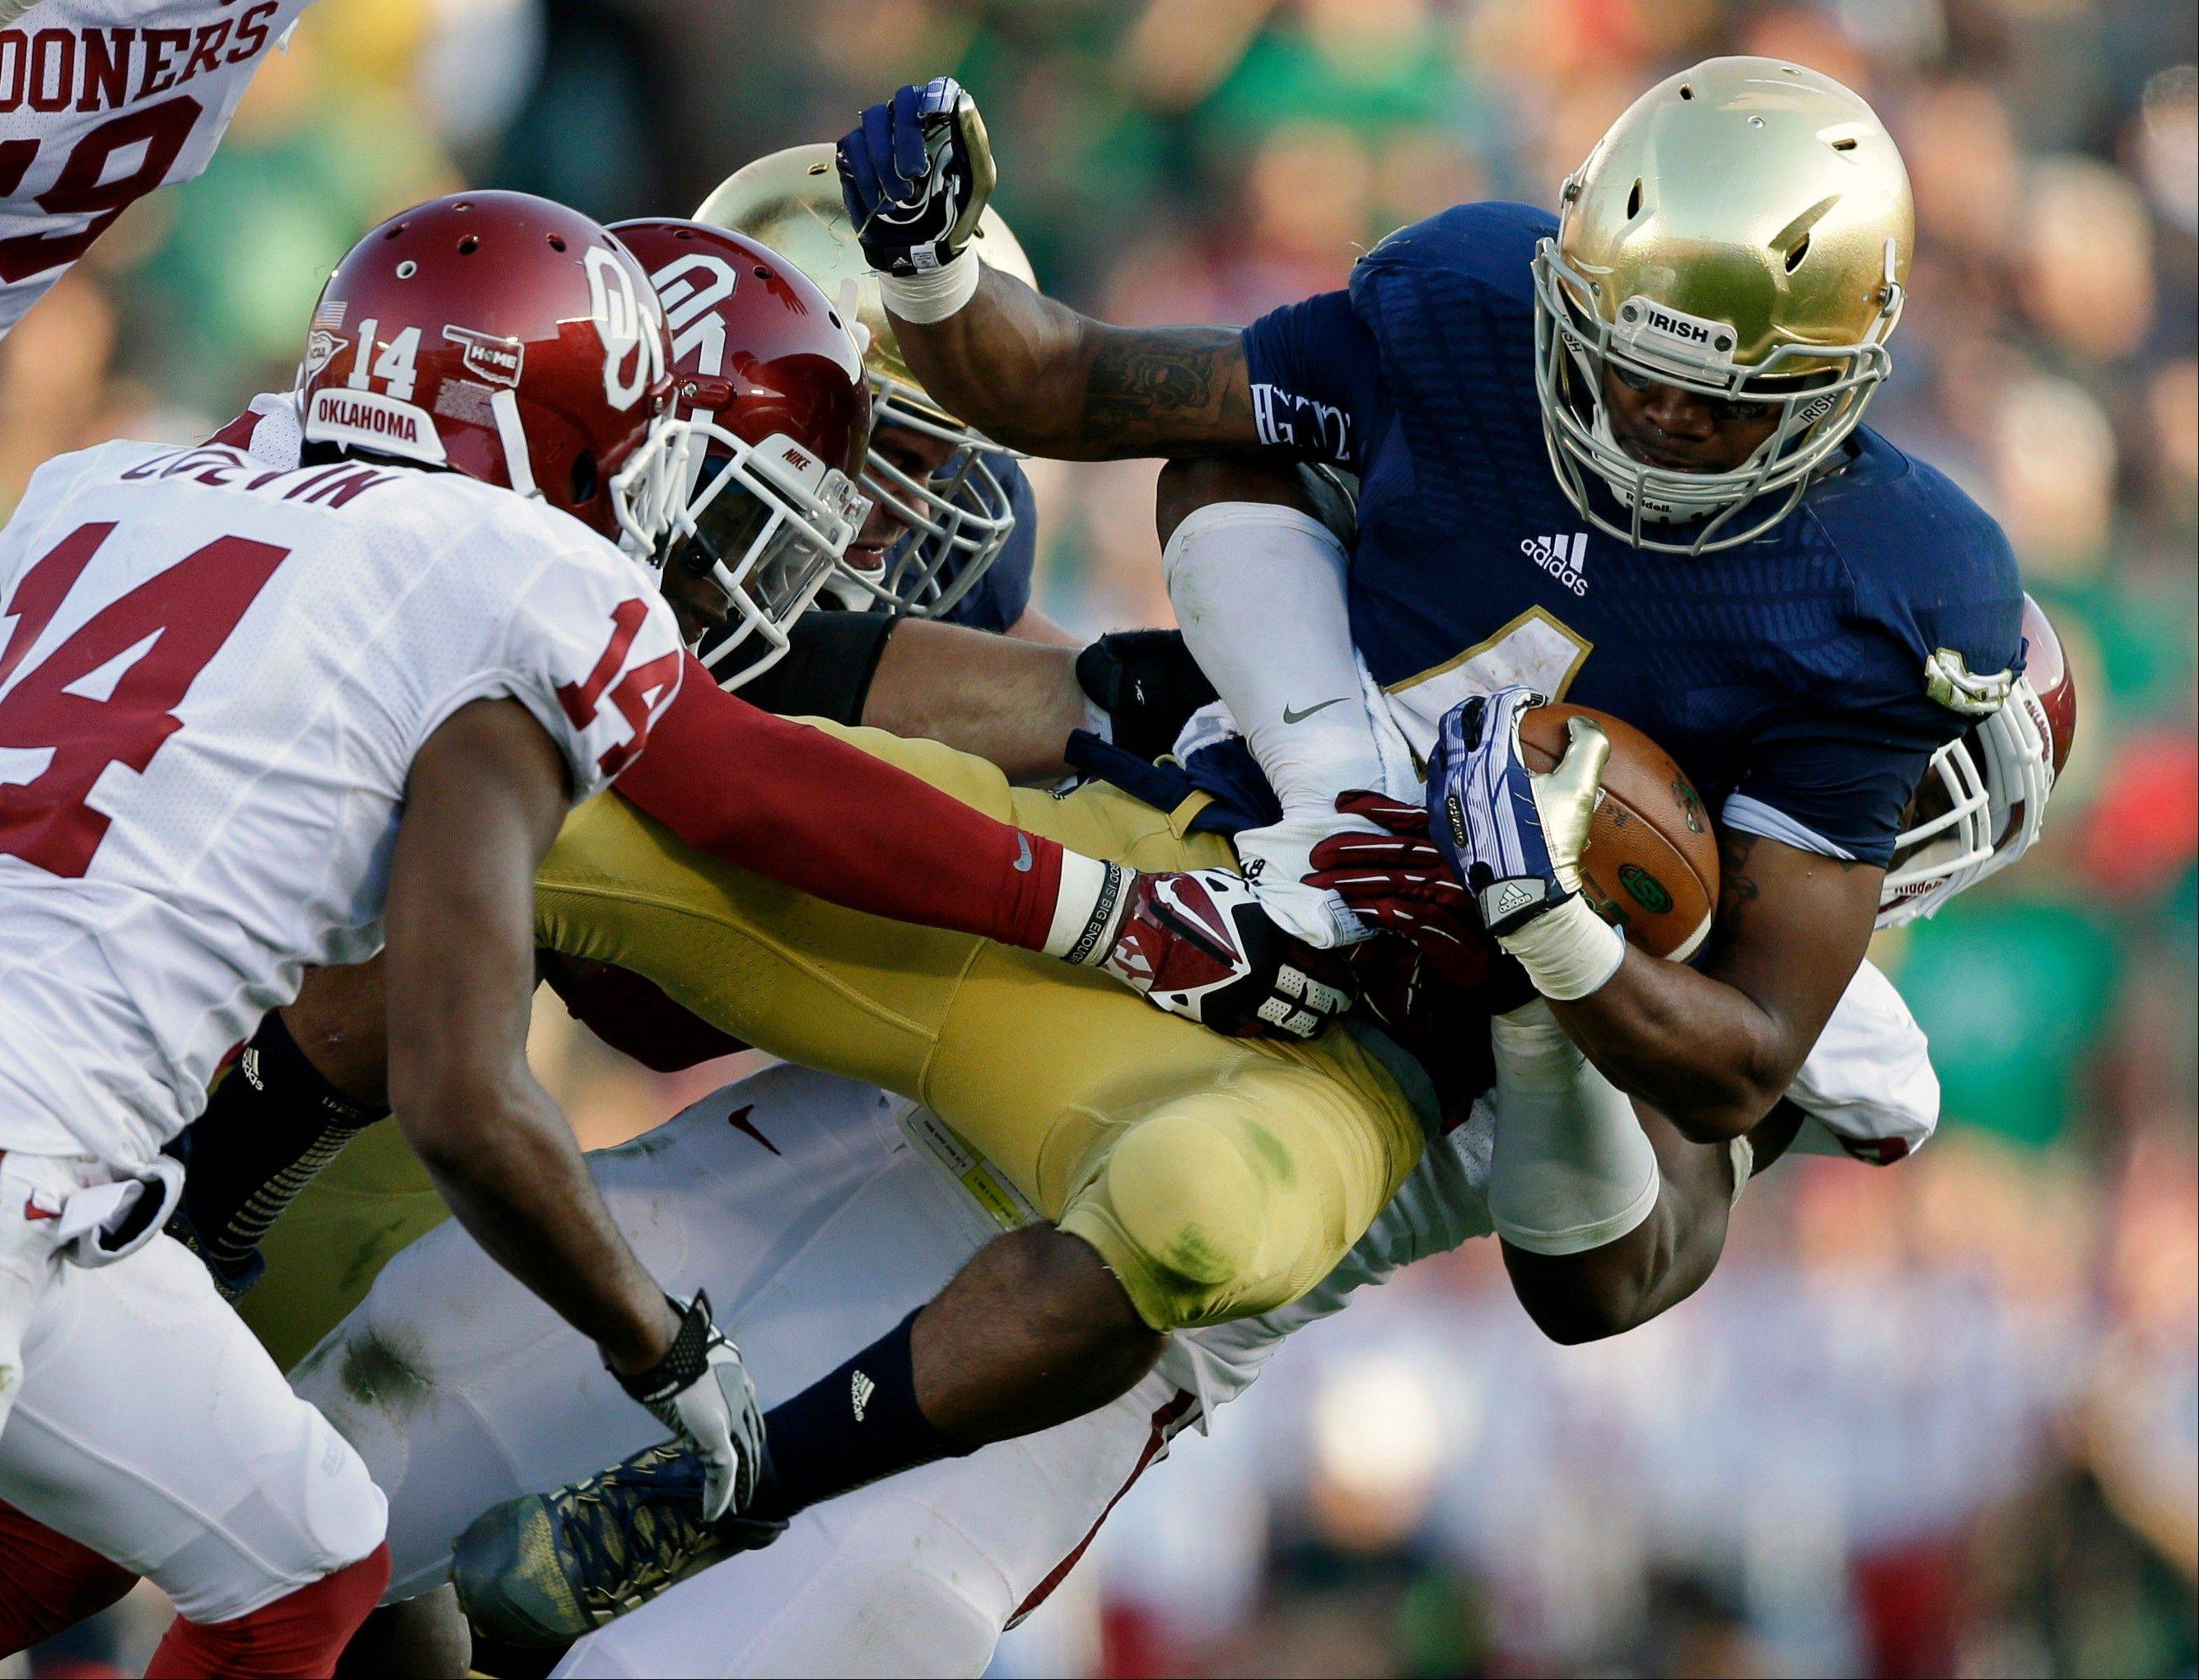 Notre Dame's George Atkinson III is tackled by Oklahoma's Geneo Grissom during the second half of Saturday's game in South Bend, Ind. Oklahoma defeated Notre Dame 35-21.